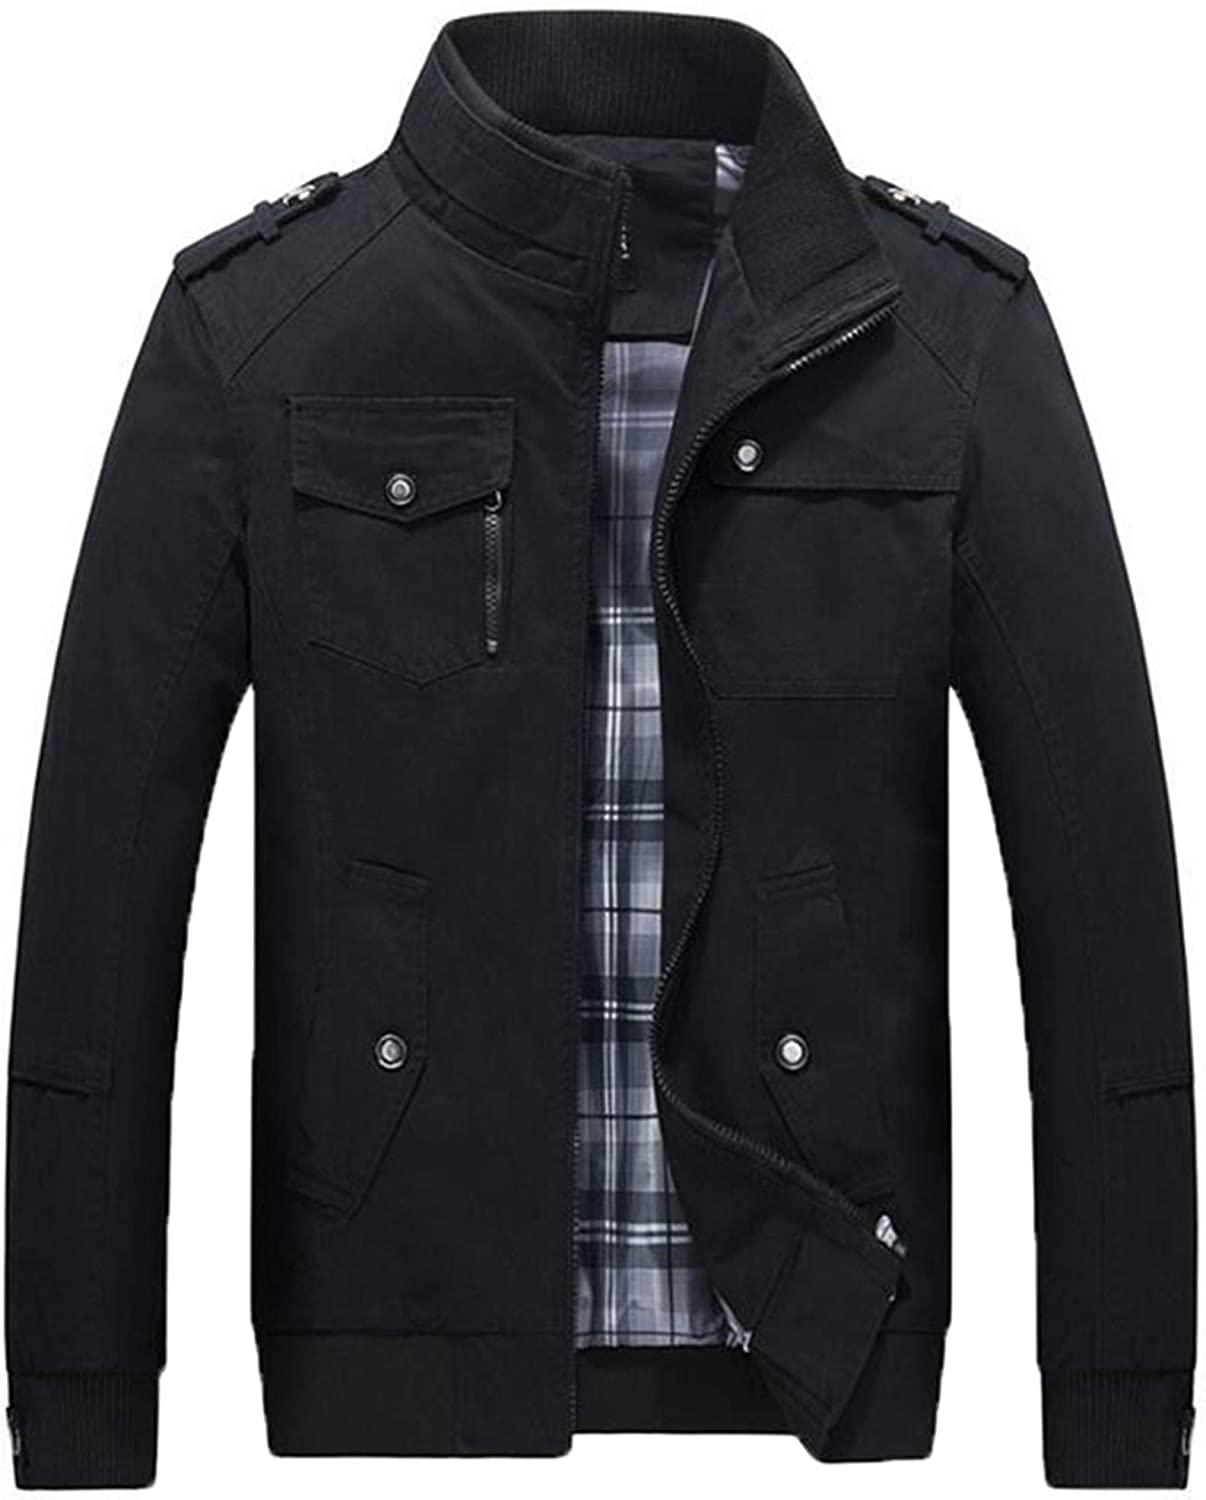 Allonly Men's specialty shop Fashion Stand Collar Sleeve Popular brand Cotton Long Win Jacket